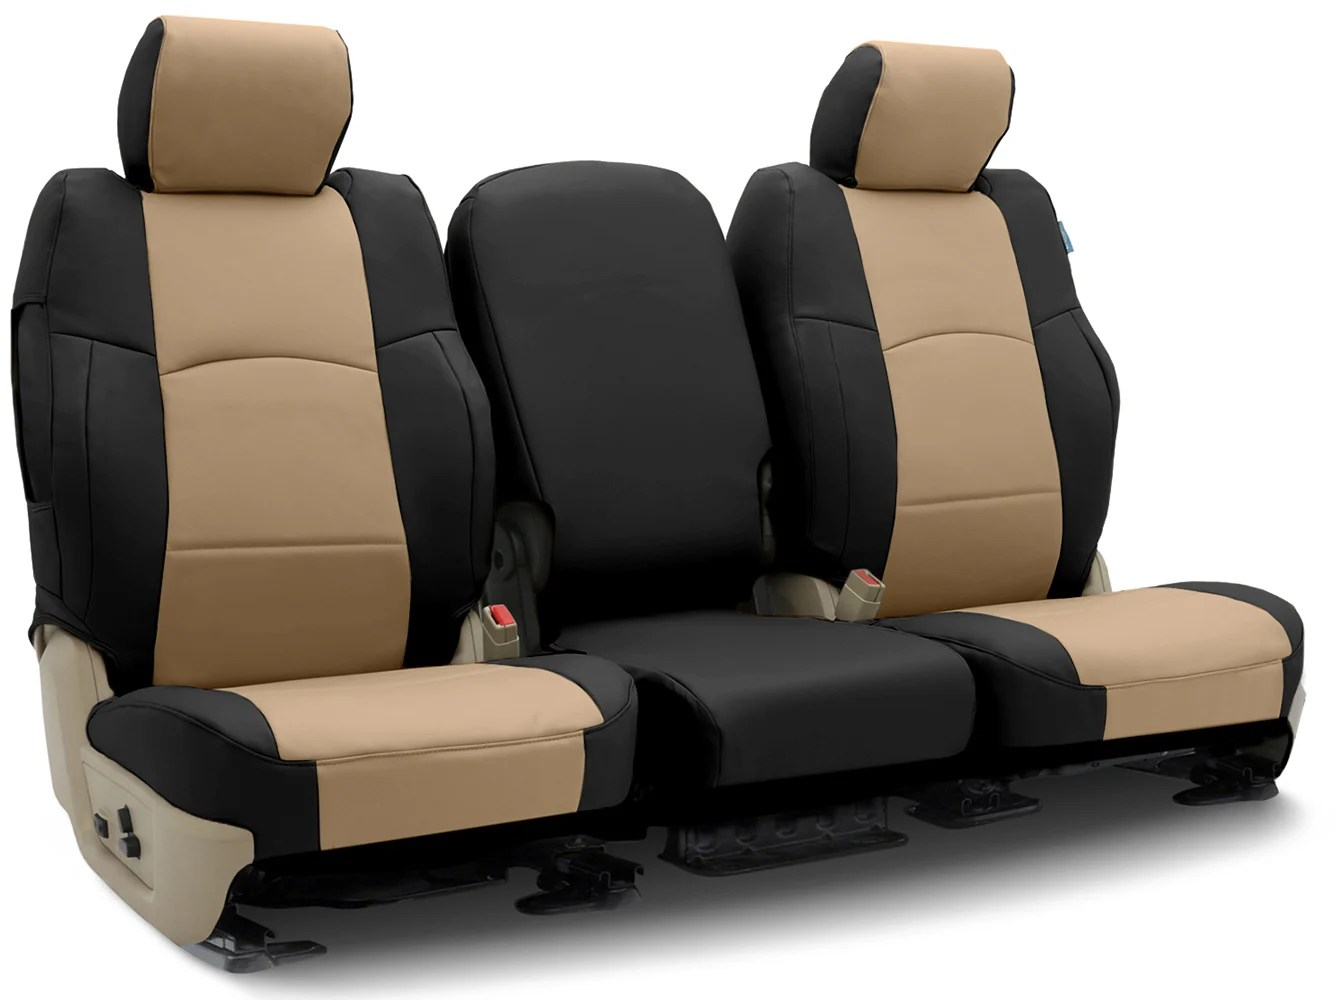 Coverking Leatherette Seat Covers, Coverking Custom Seat